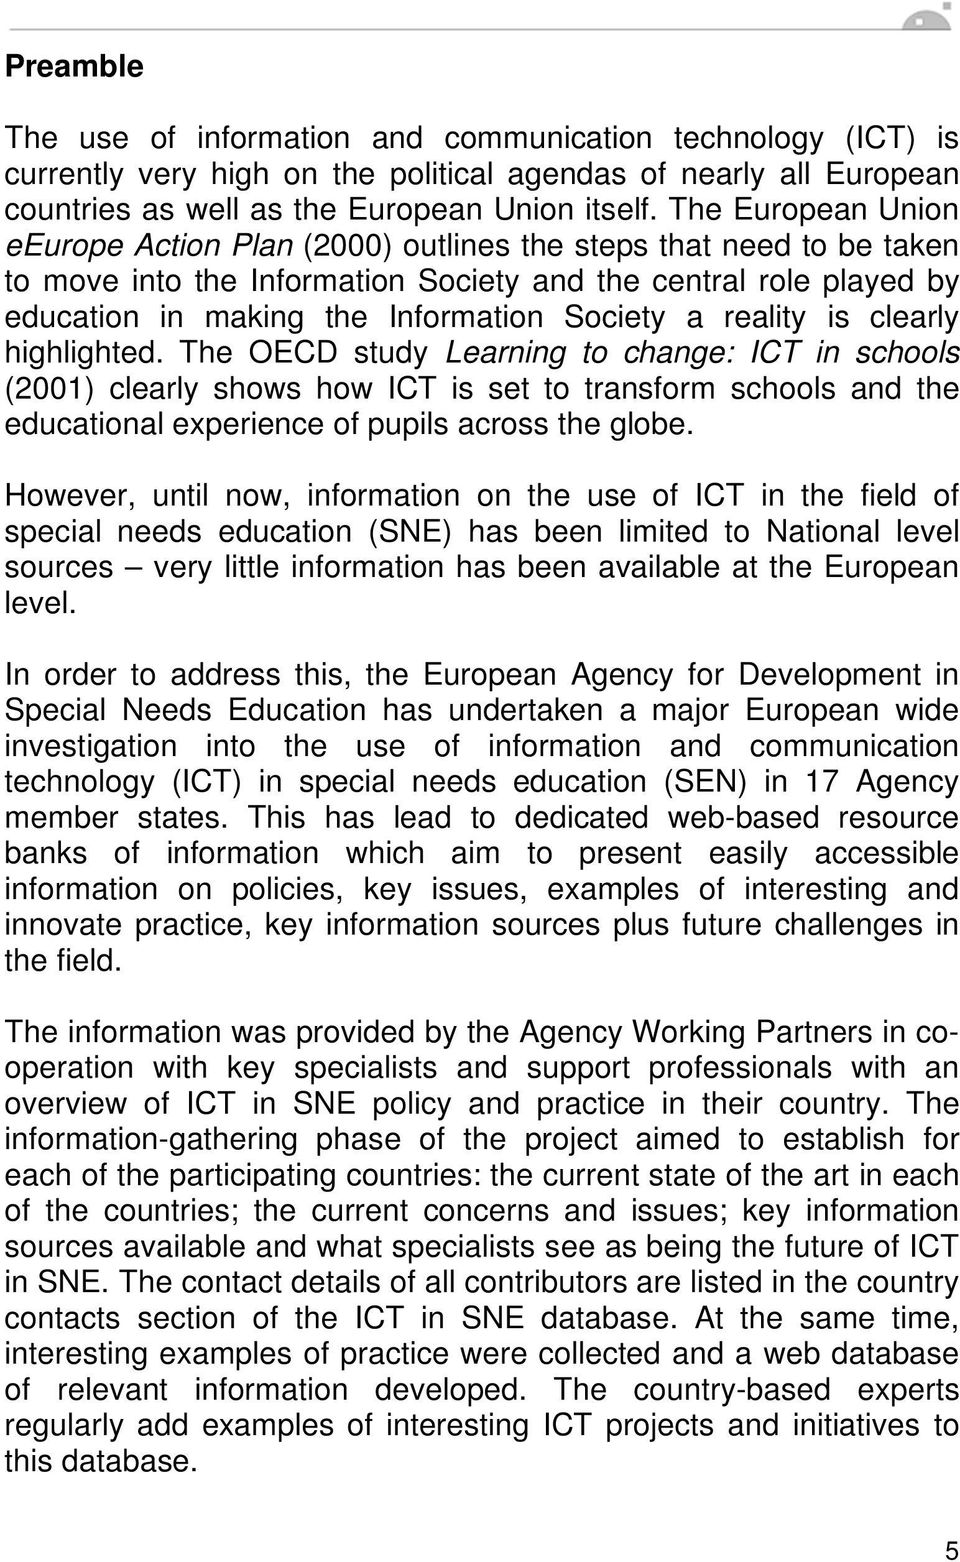 a reality is clearly highlighted. The OECD study Learning to change: ICT in schools (2001) clearly shows how ICT is set to transform schools and the educational experience of pupils across the globe.